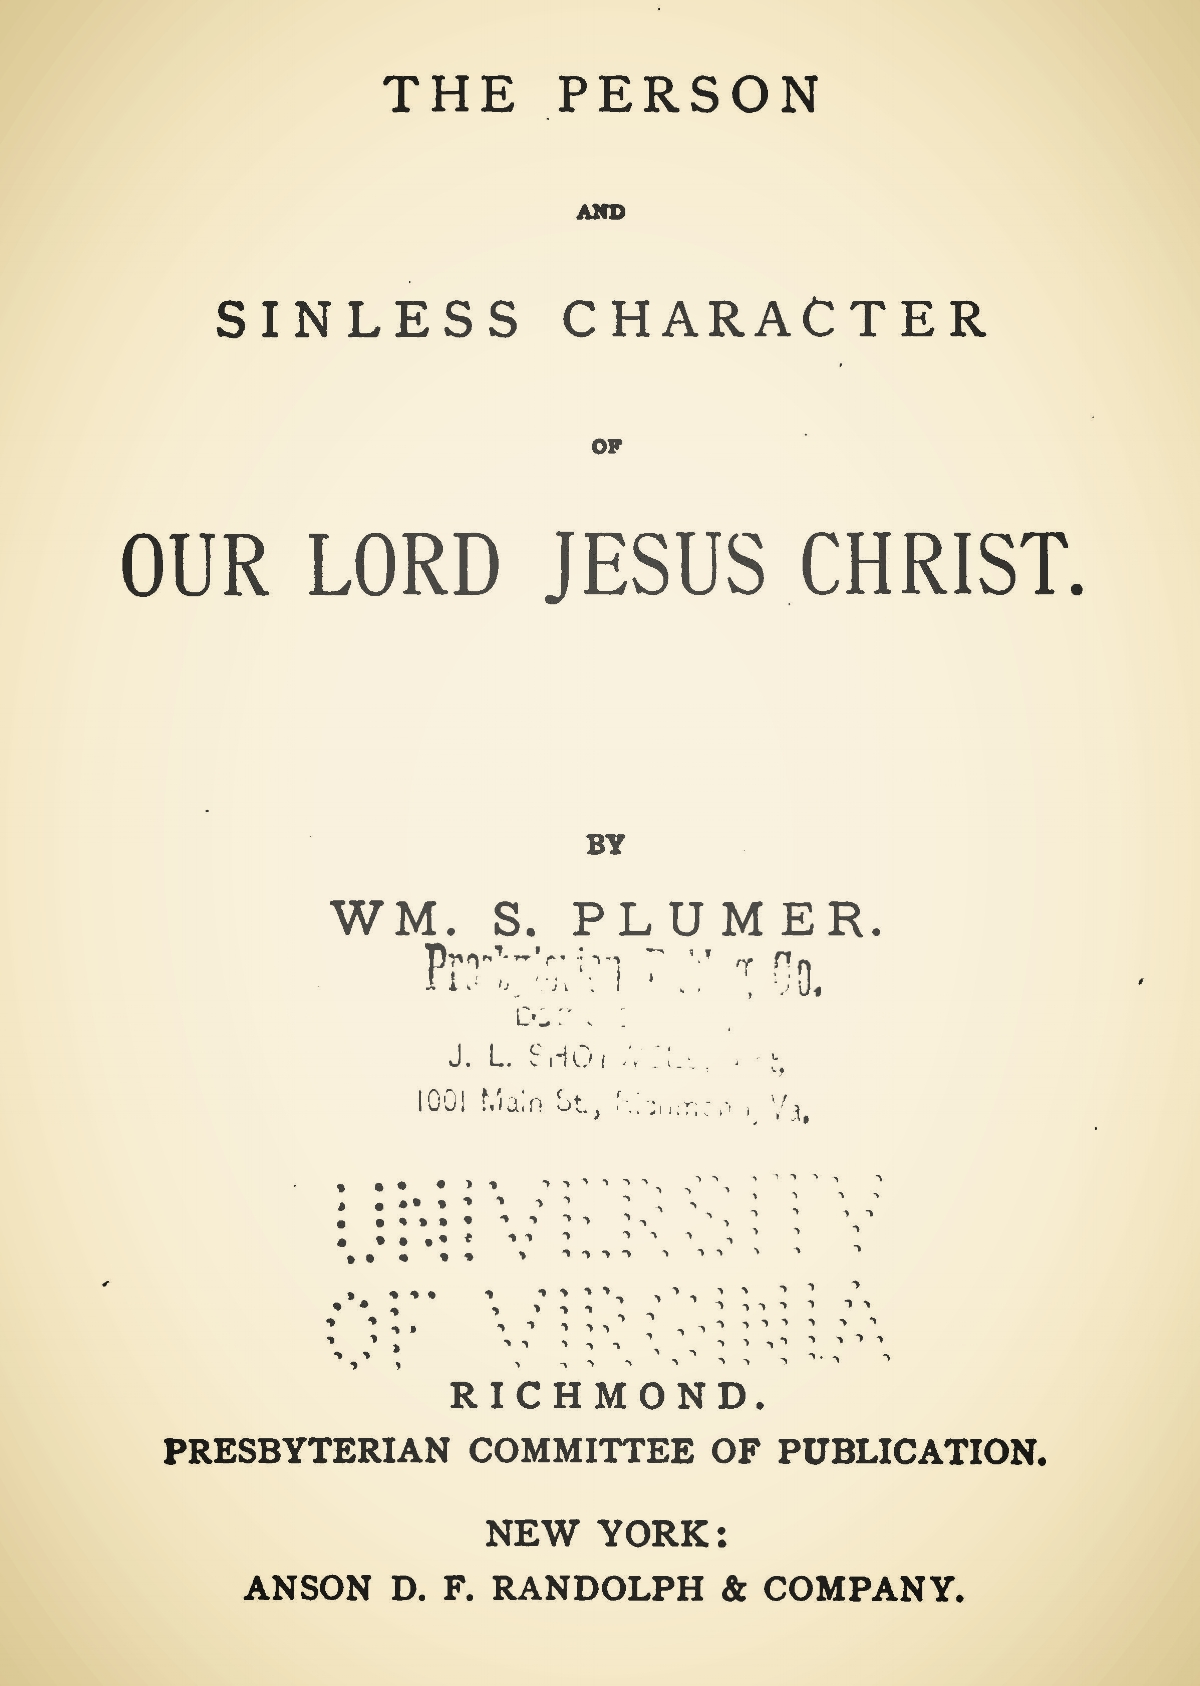 Plumer, William Swan, The Person and Sinless Character of Our Lord Jesus Christ Title Page.jpg